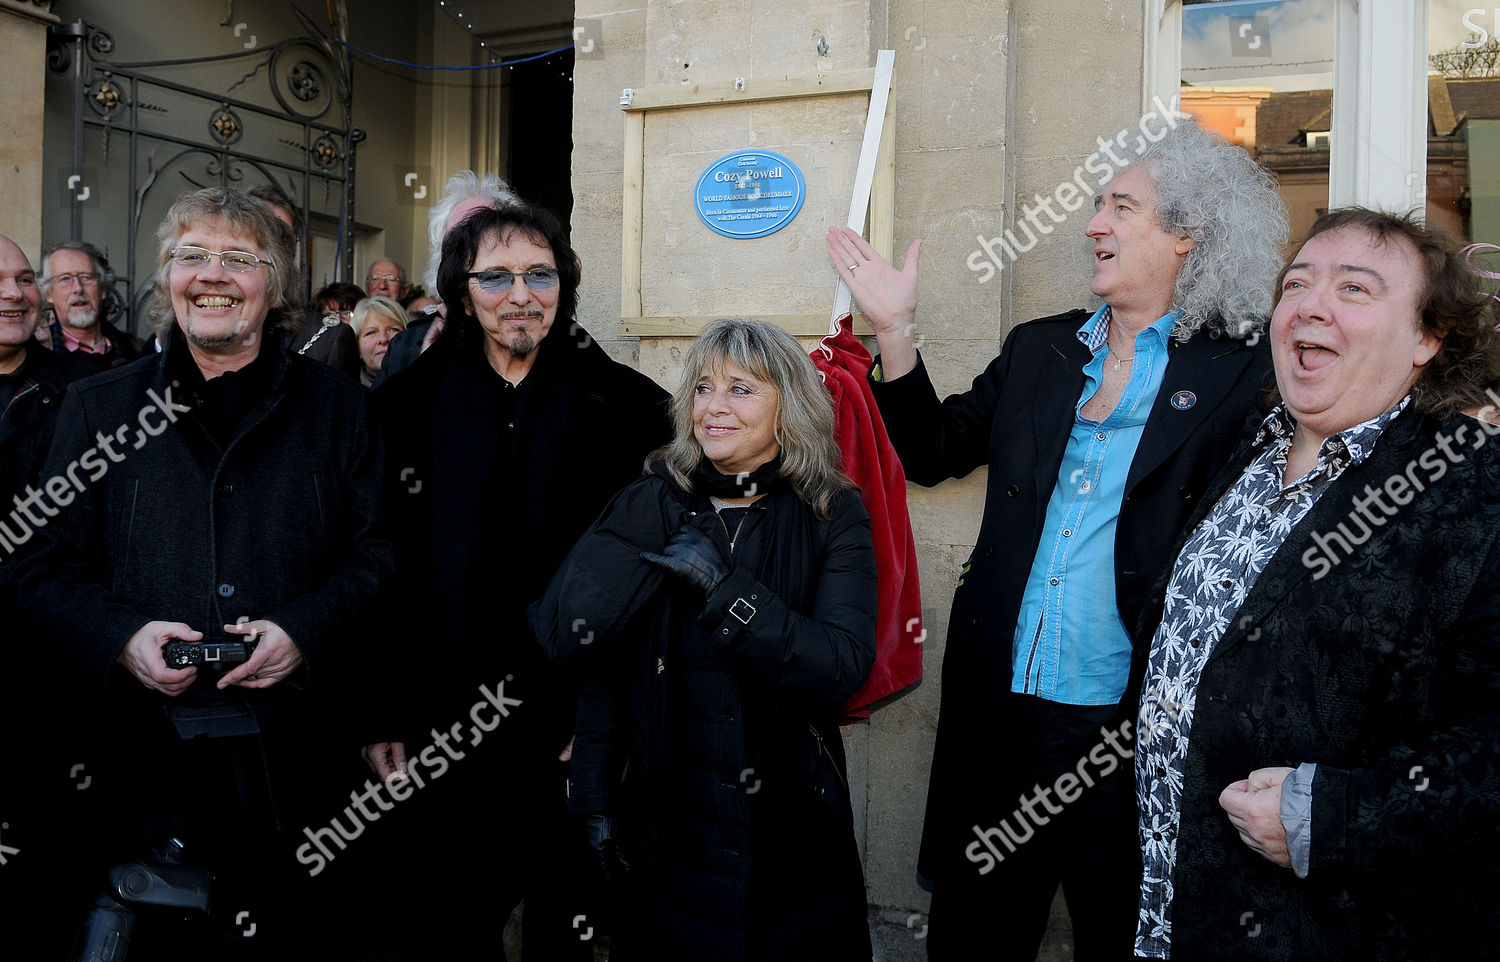 Stock photo of Plaque unveiled for rock drummer Cozy Powell, Cirencester, Britain - 07 Jan 2016